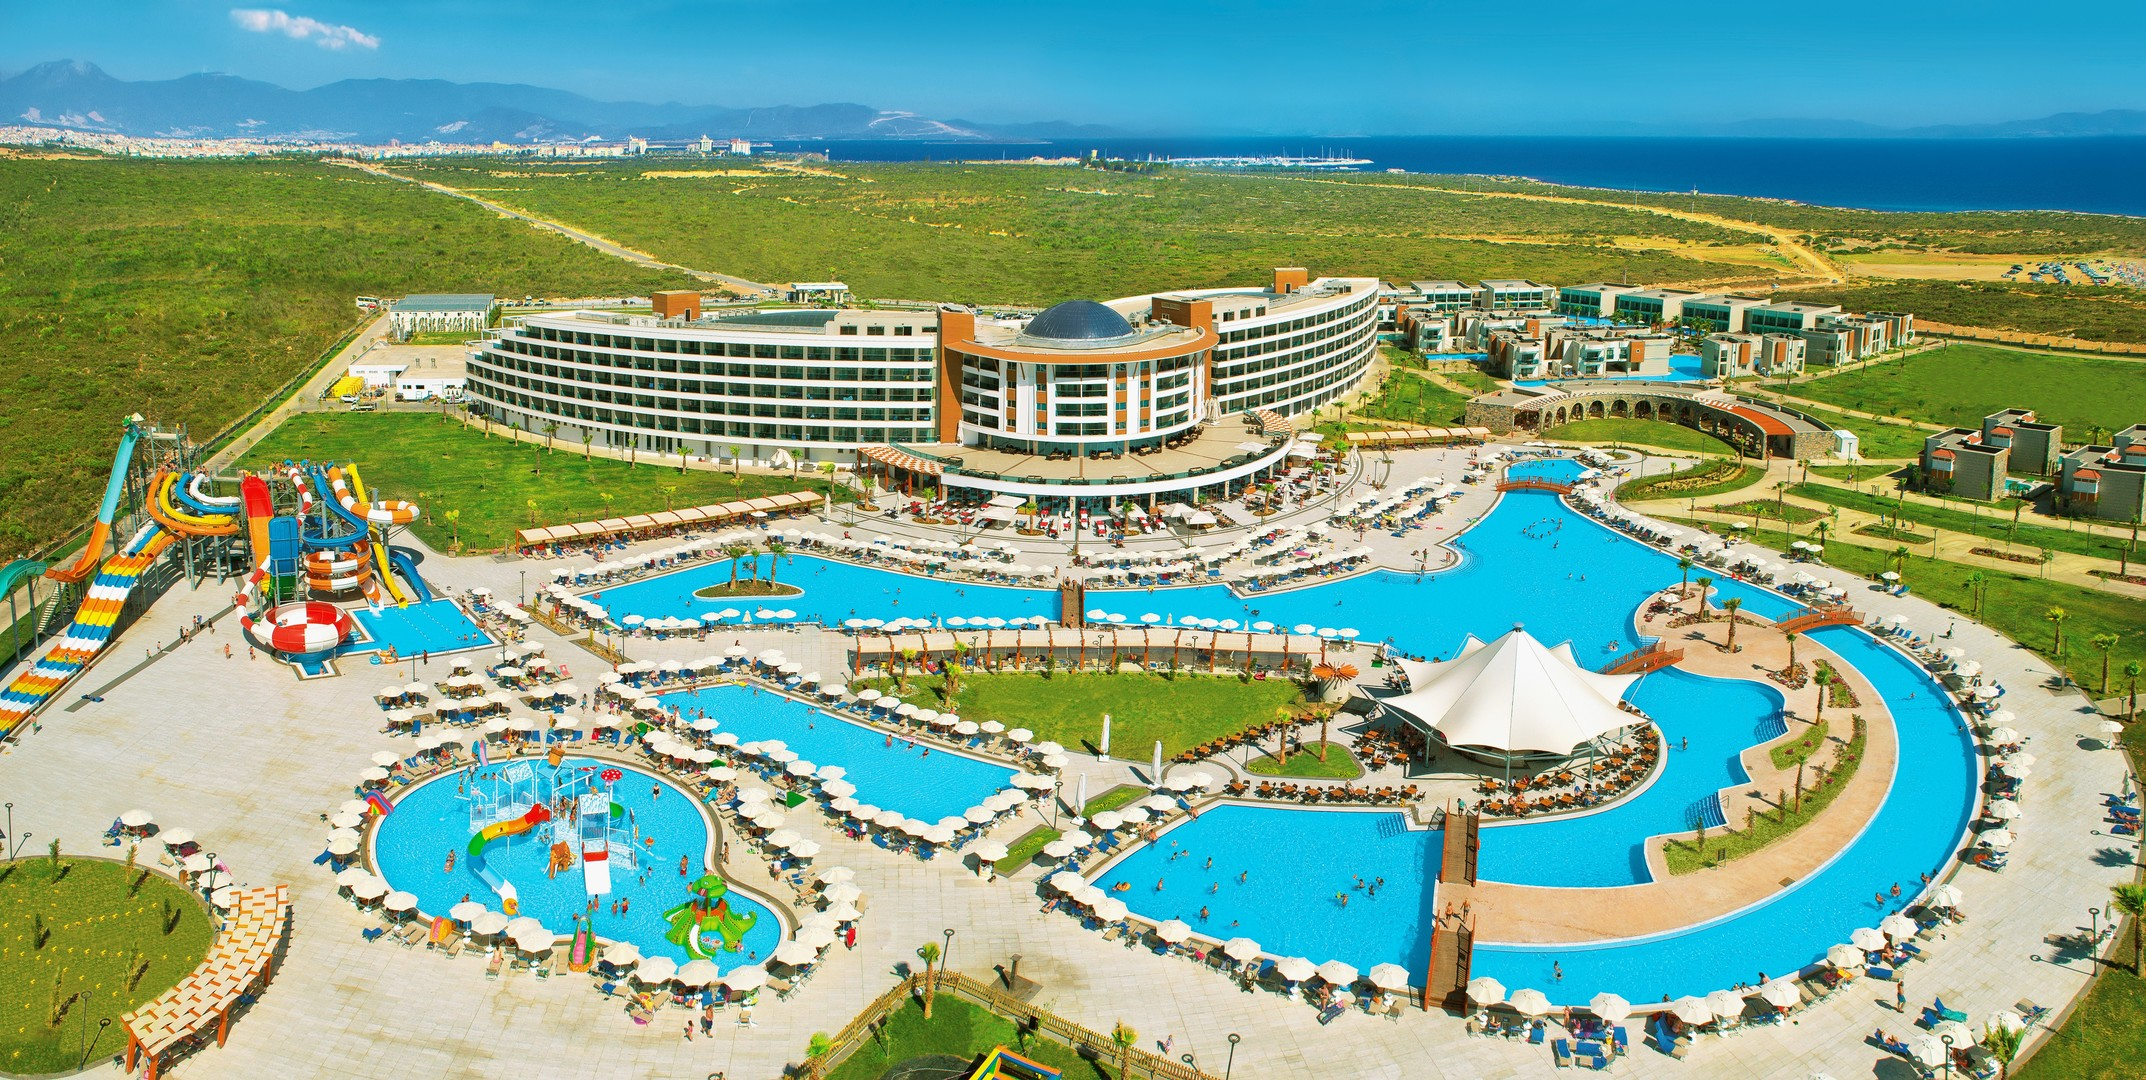 Hotel Aquasis Deluxe Resort and Spa